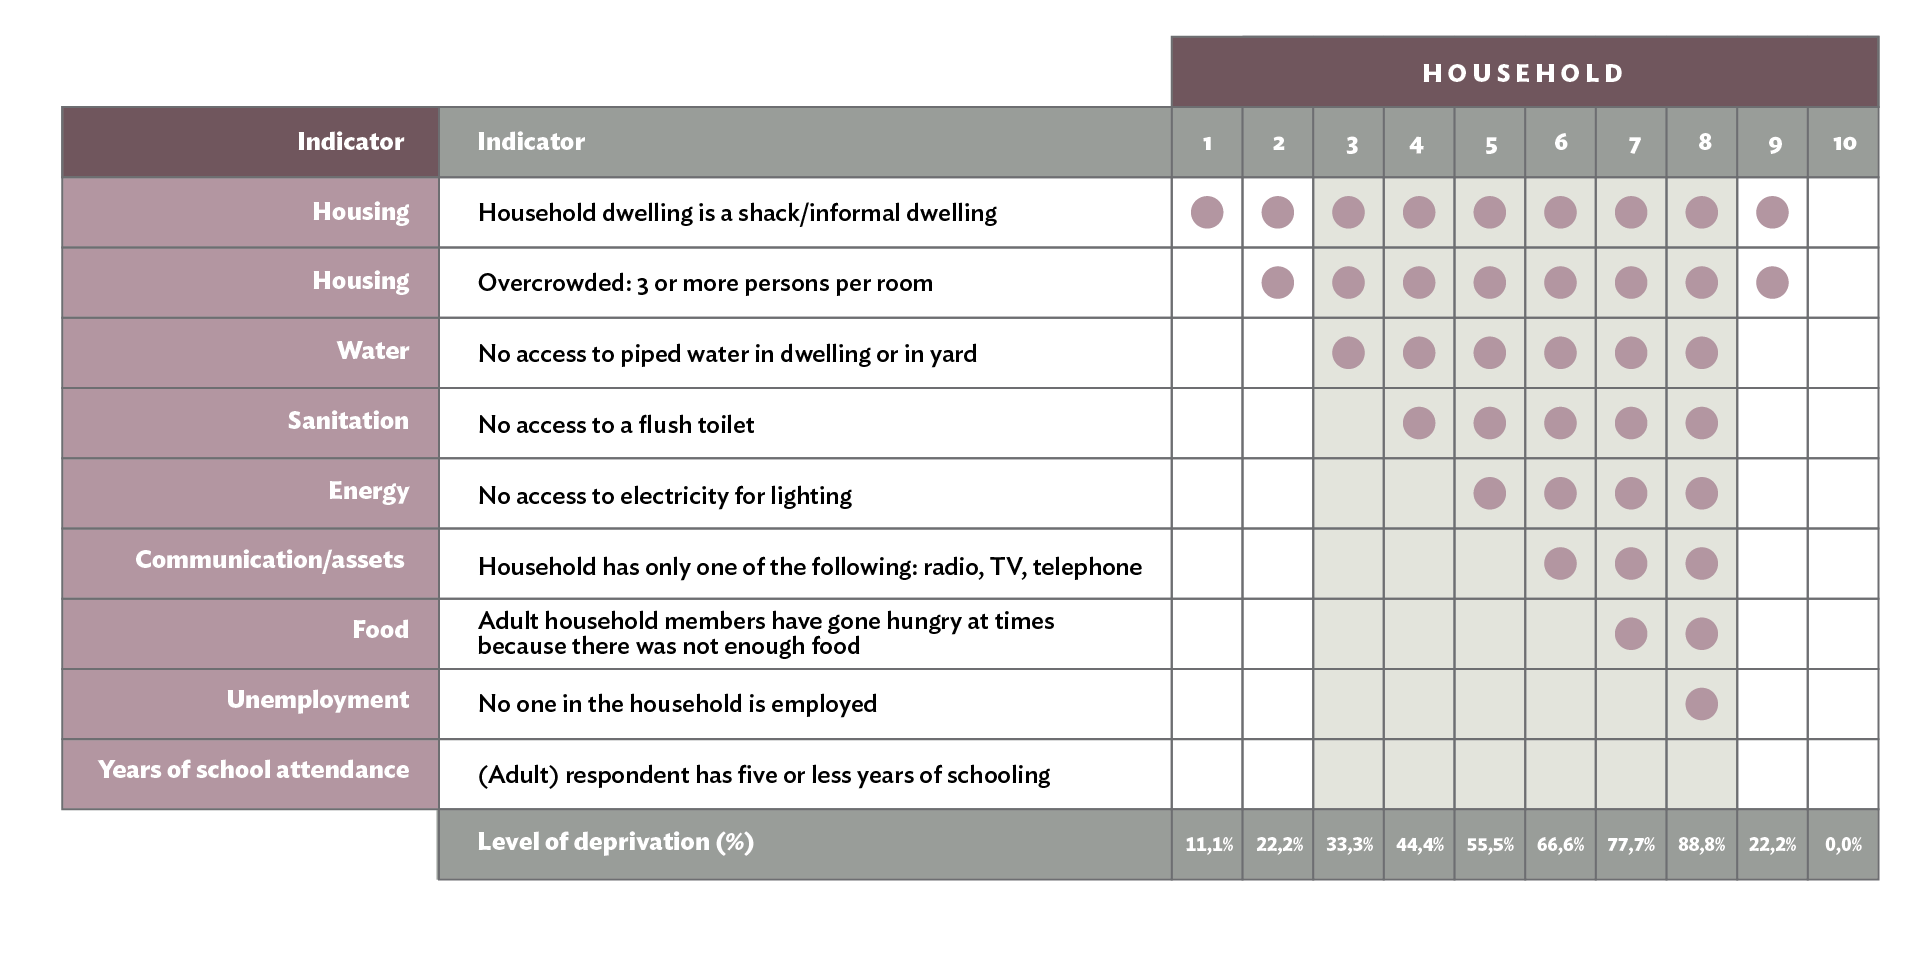 Table 1: A Multidimensional Poverty Index (MPI), calculated by multiplying the two percentages for Headcount and Intensity, indicates both the breadth and depth of poverty in an area.